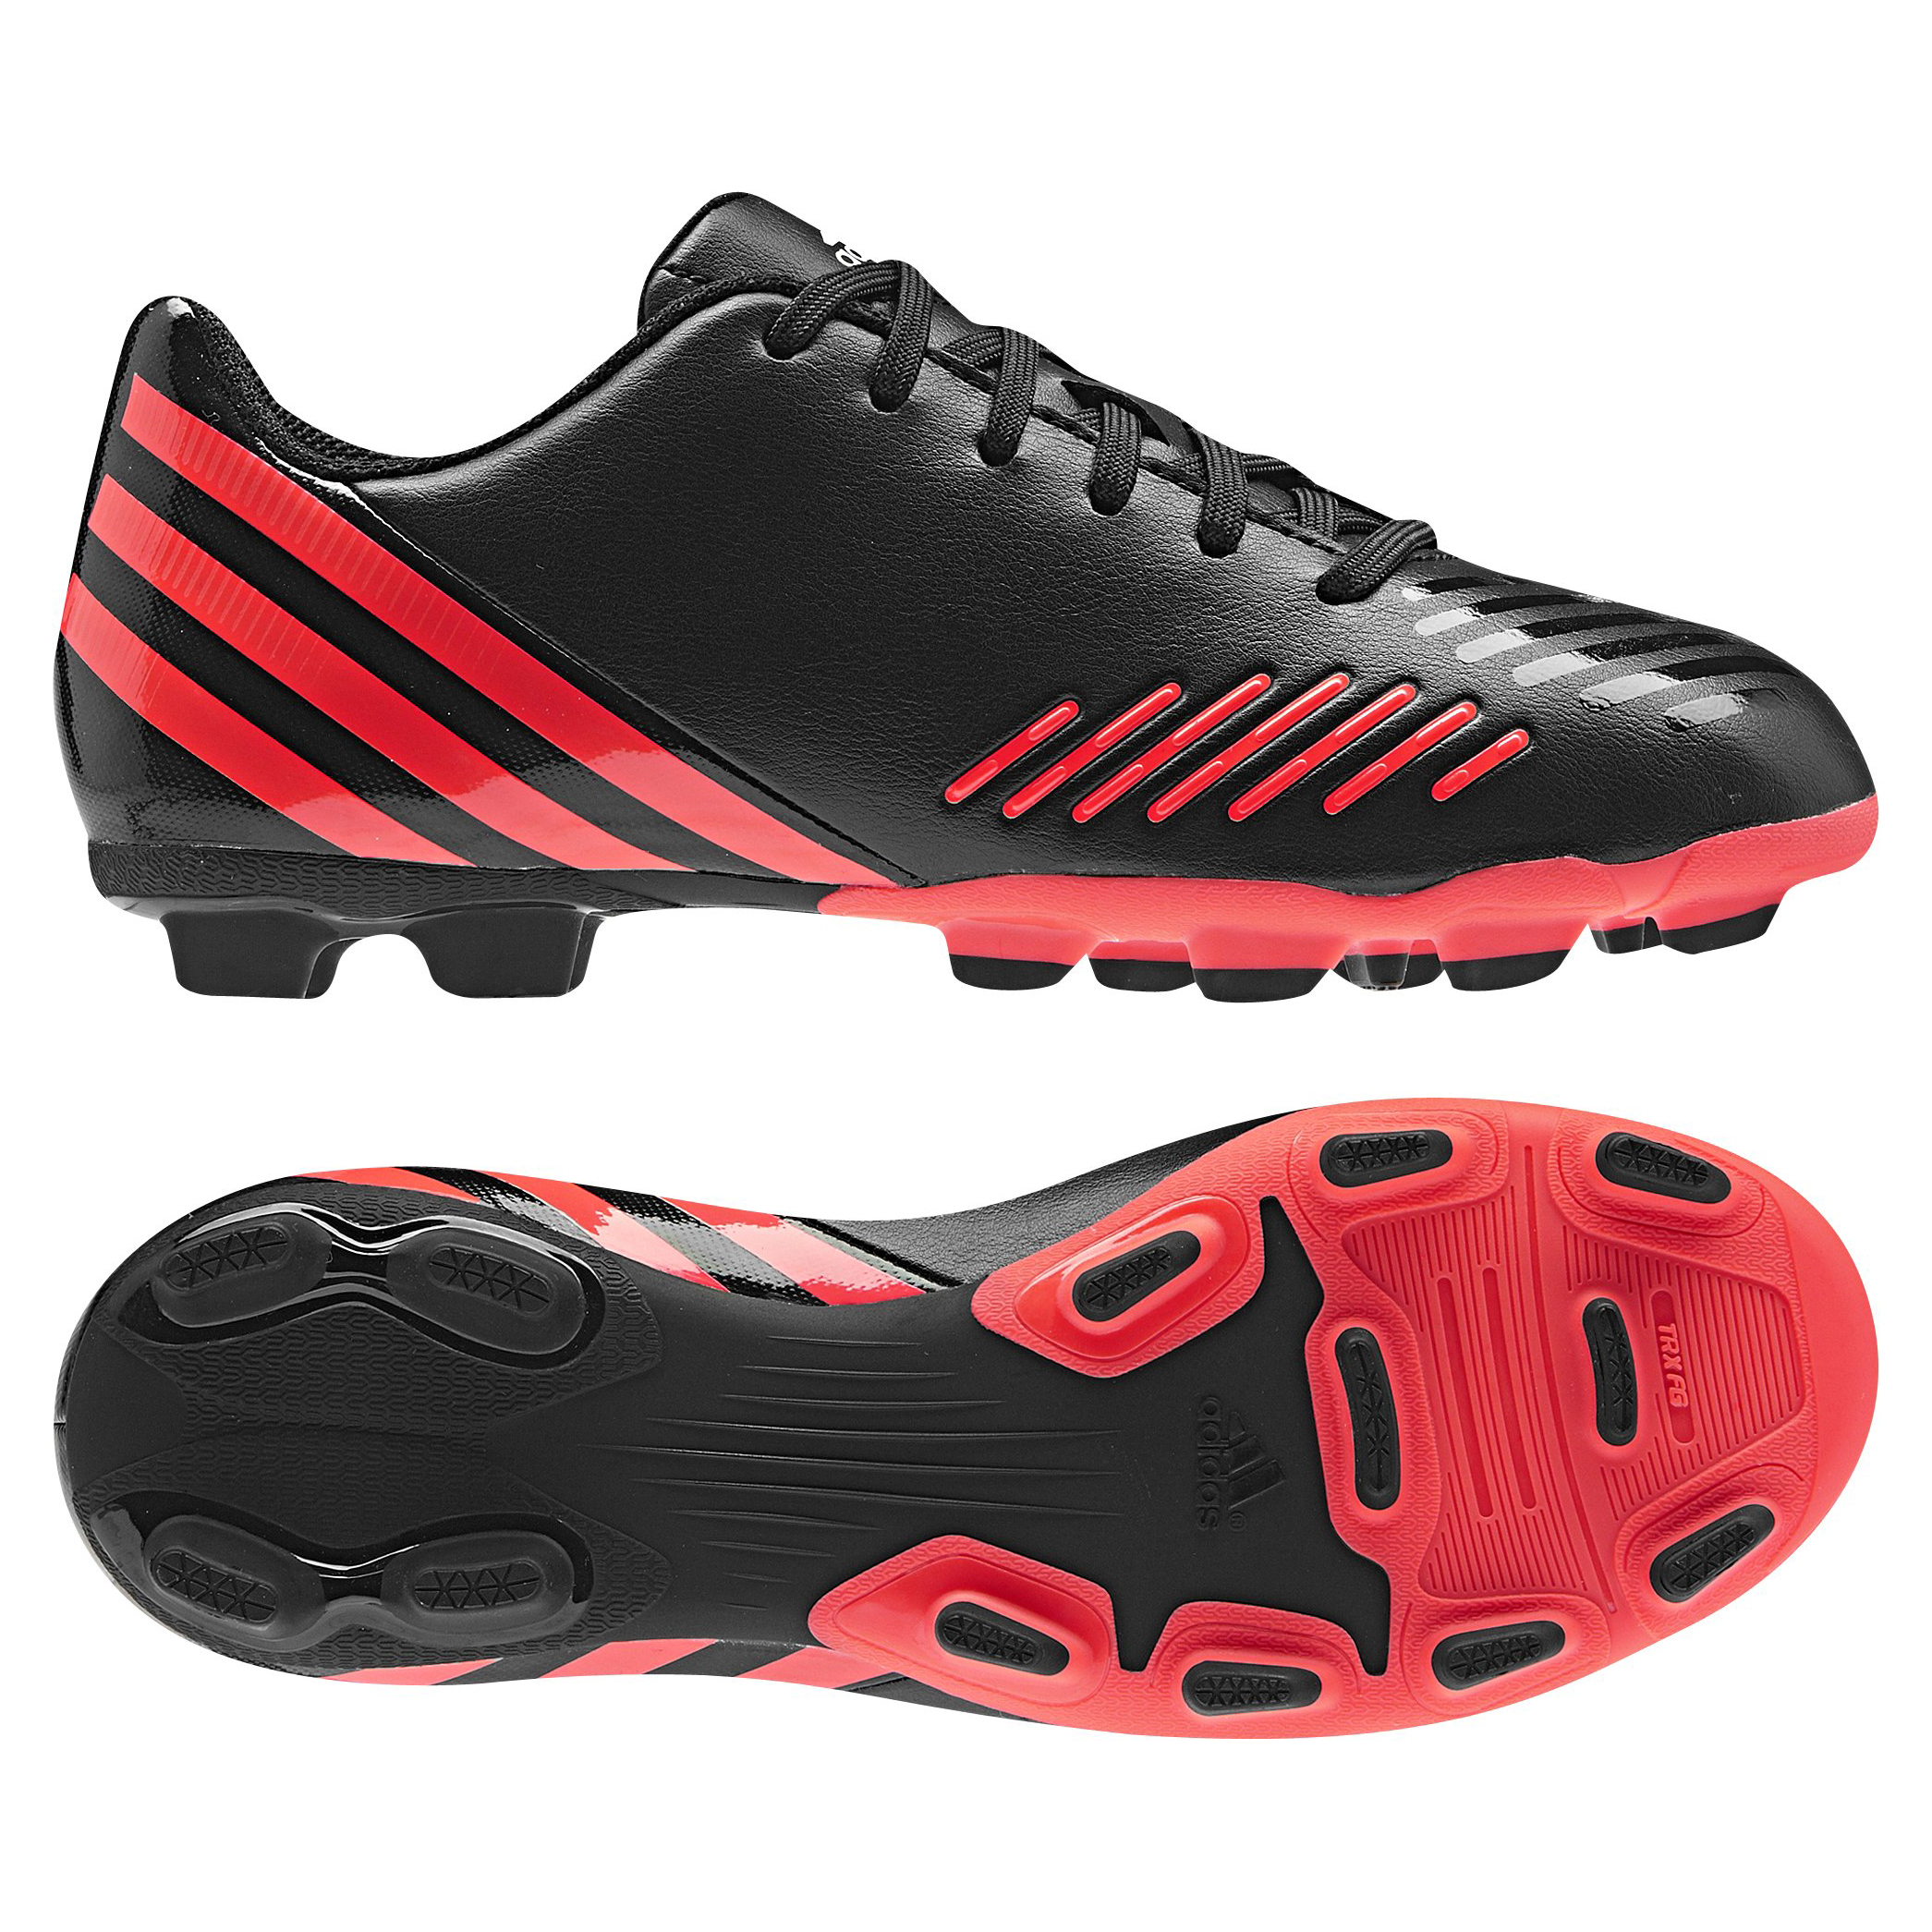 adidas Predito LZ TRX Firm Ground Football Boots - Black/Pop/Running White - Kids